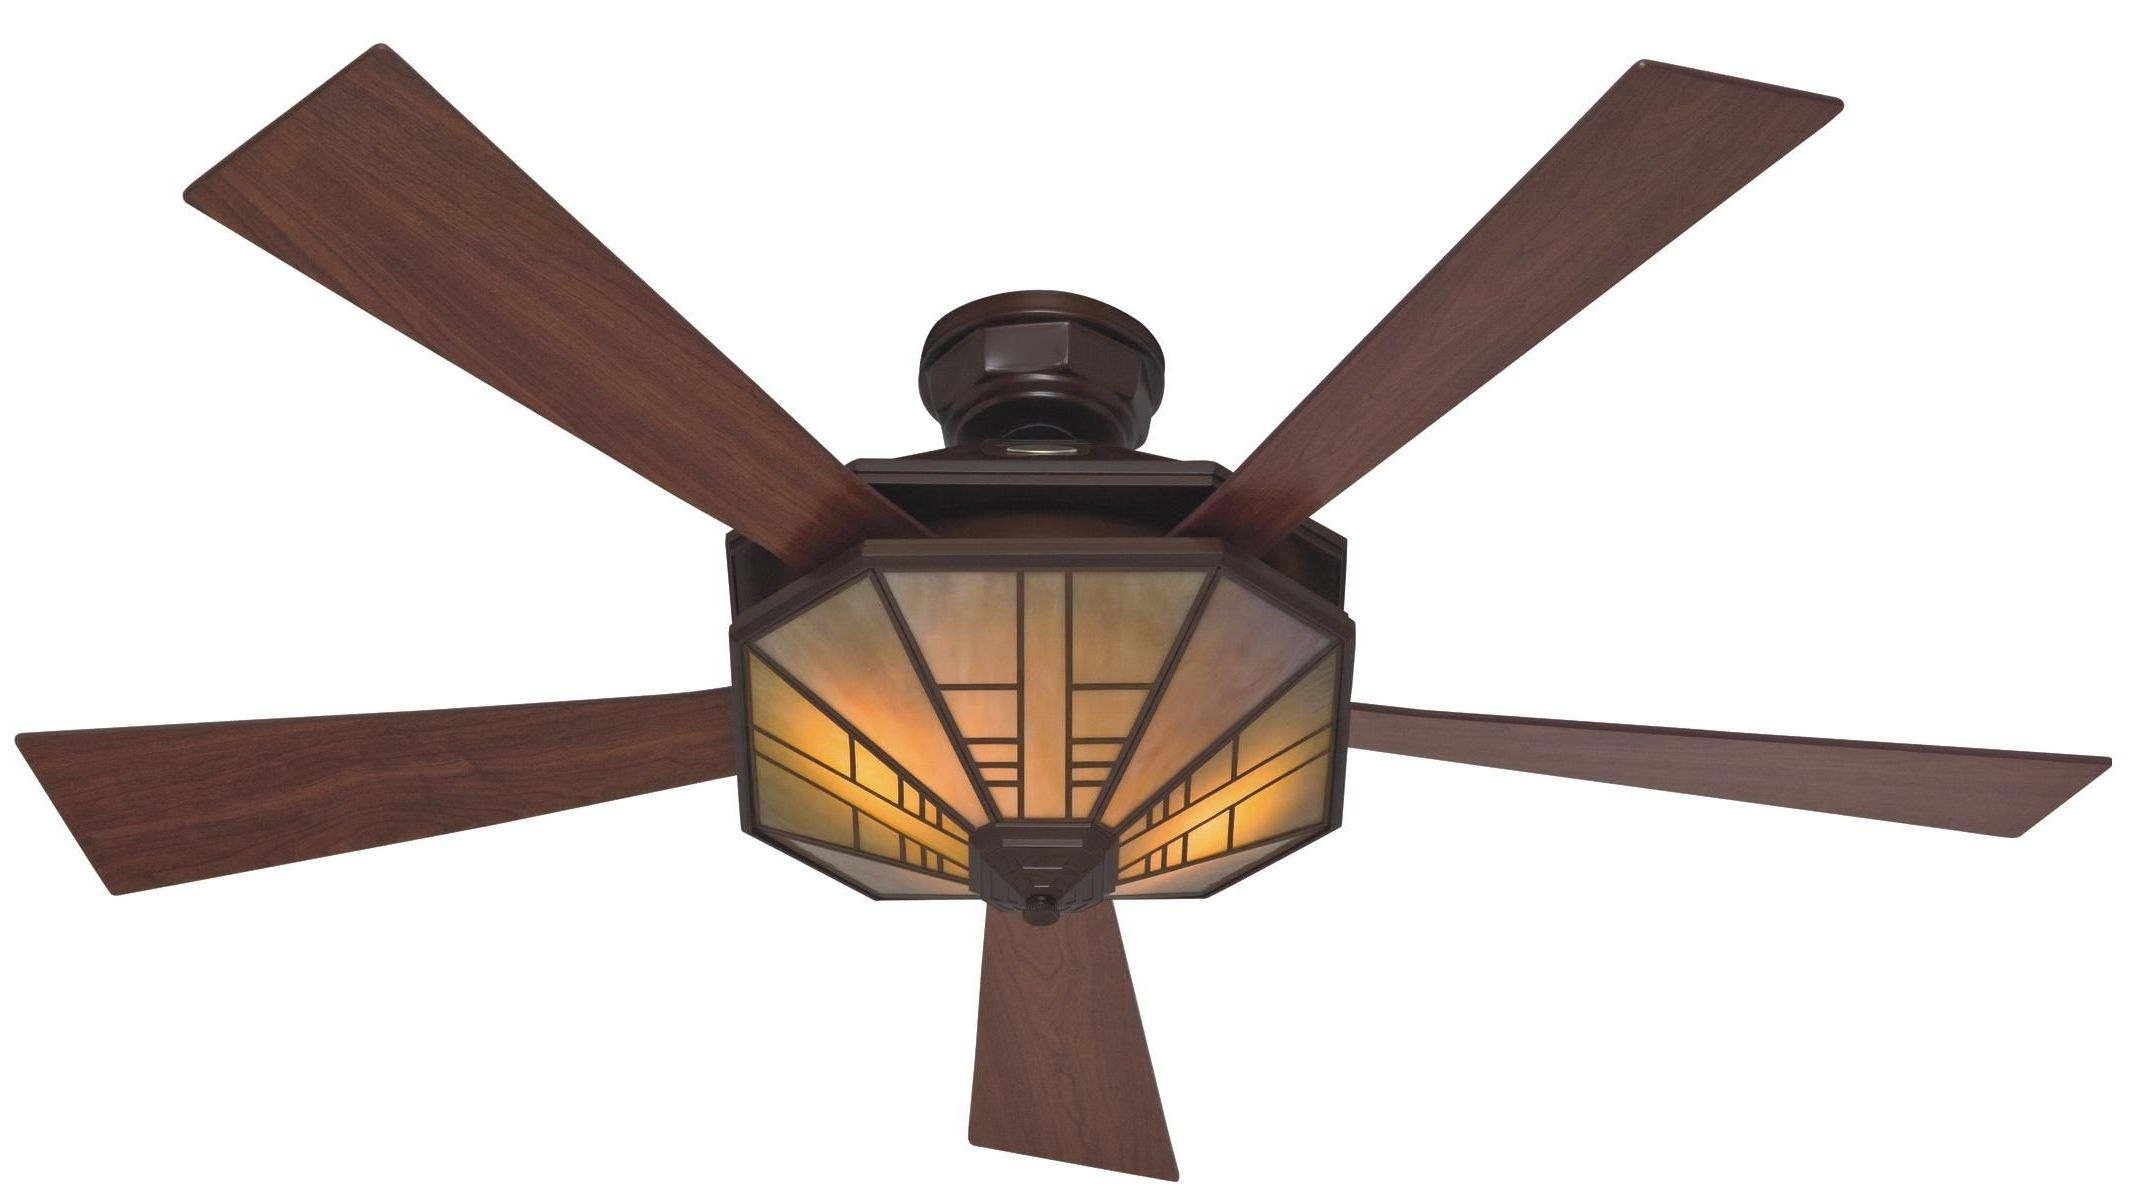 2018 Mission Style Ceiling Lights Fan With Light Fresh Kitchen Flush Throughout Mission Style Outdoor Ceiling Fans With Lights (Gallery 5 of 20)